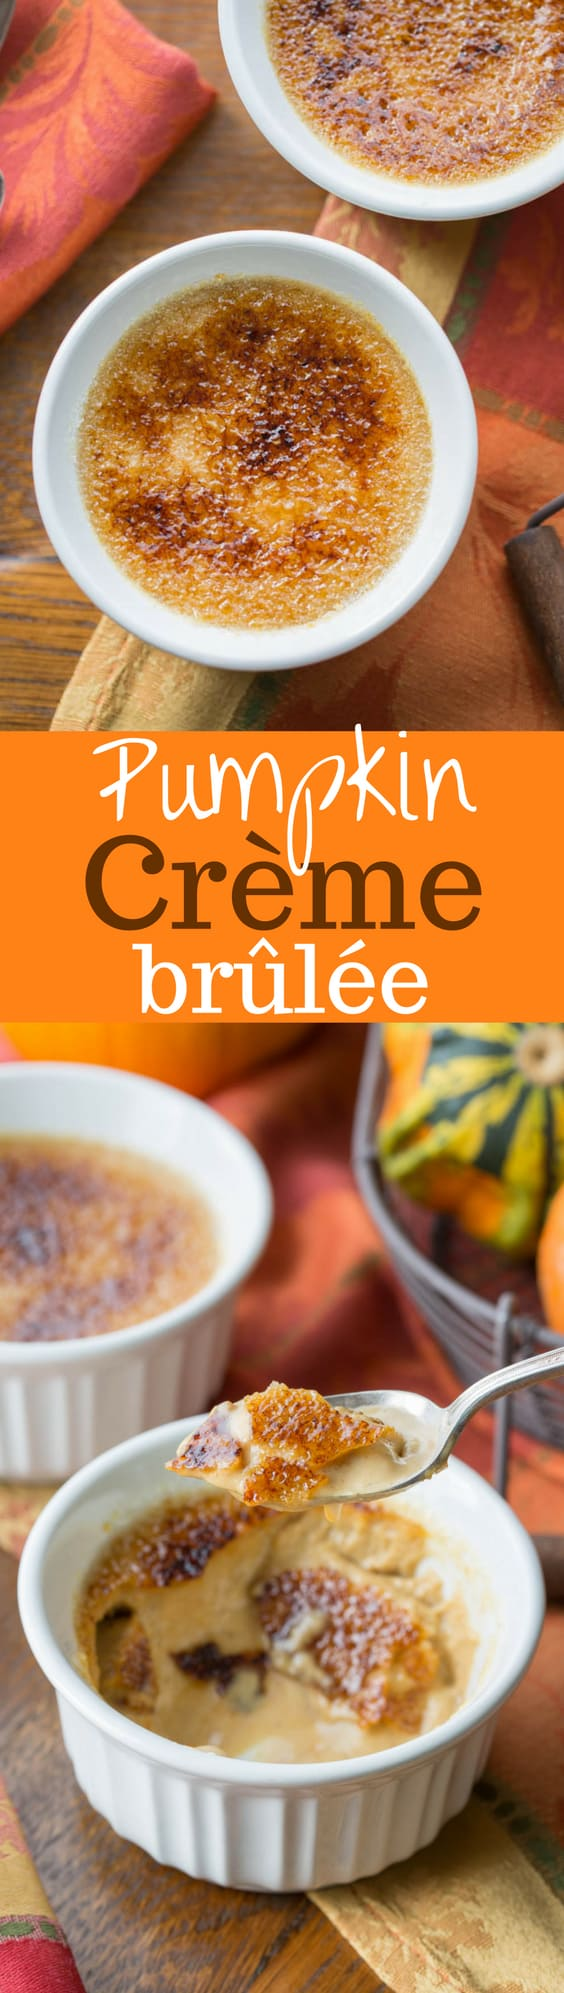 Pumpkin Crème Brûlée ~ a classic dessert turned into a delightful pumpkin treat. This easy recipe for two can be doubled or tripled as needed for a make ahead dessert that will thrill your guests! www.savingdessert.com